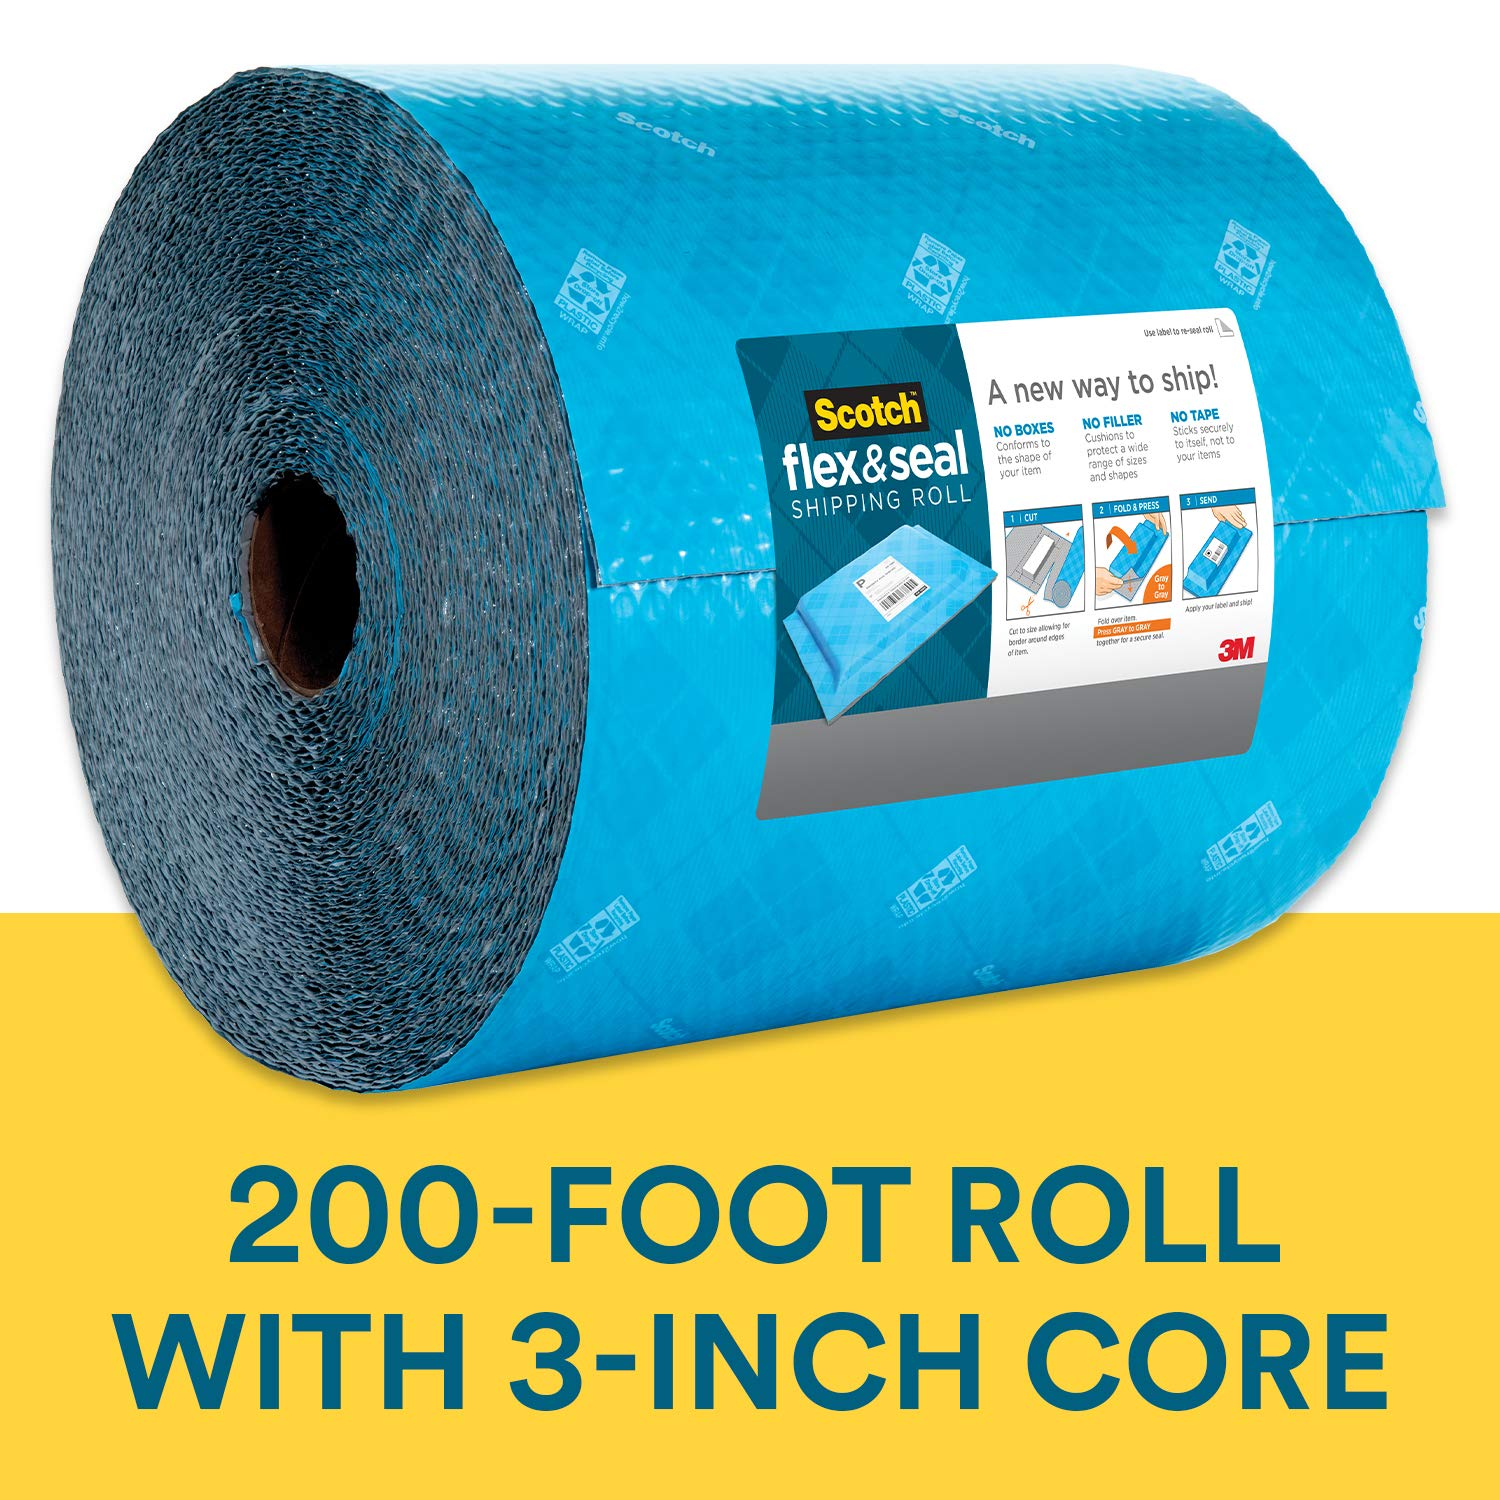 Scotch Flex and Seal Shipping Roll, 200 ft x 15 in, Simple Packaging Alternative to Cardboard Boxes, Bubble Mailers, Poly Bags, Cushioning